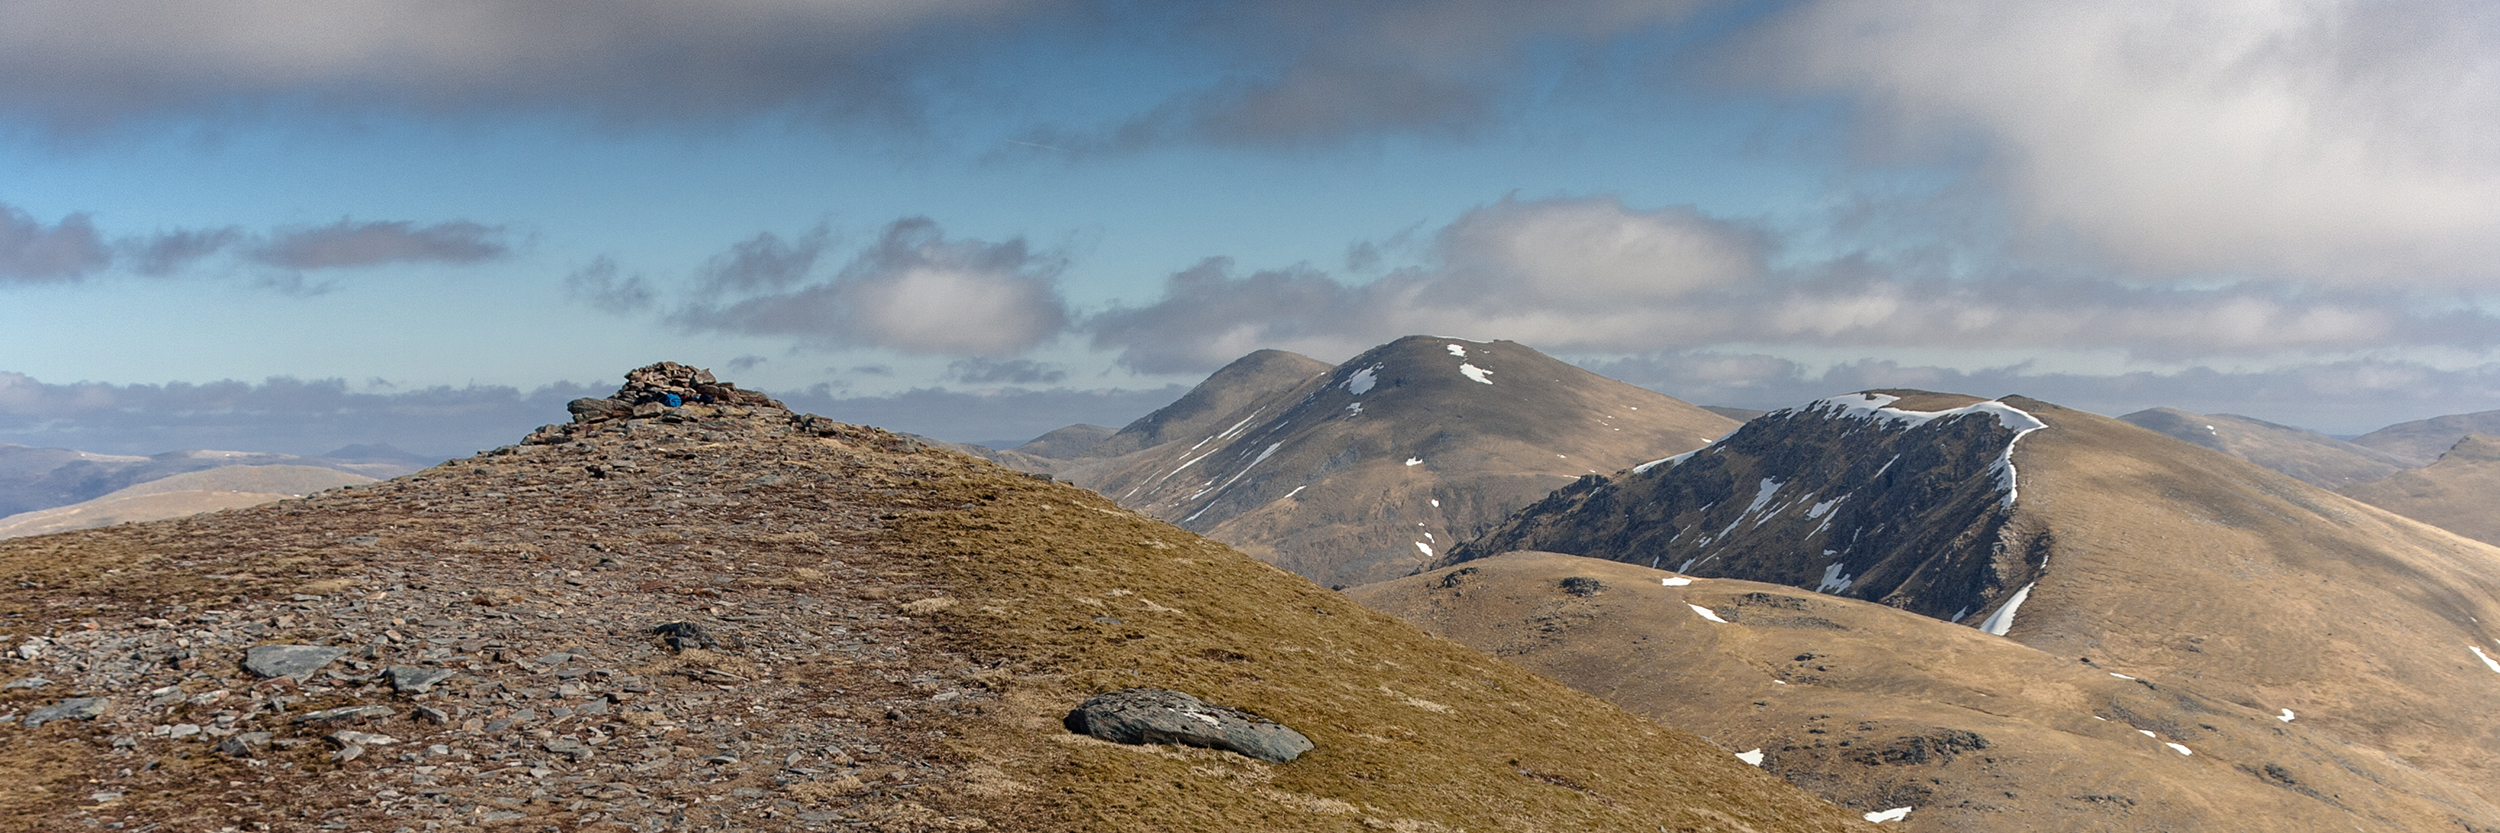 Scotland360° Landscpe Photography Workshops, Mountain Photography Workshops, Bespoke Photography Workshops